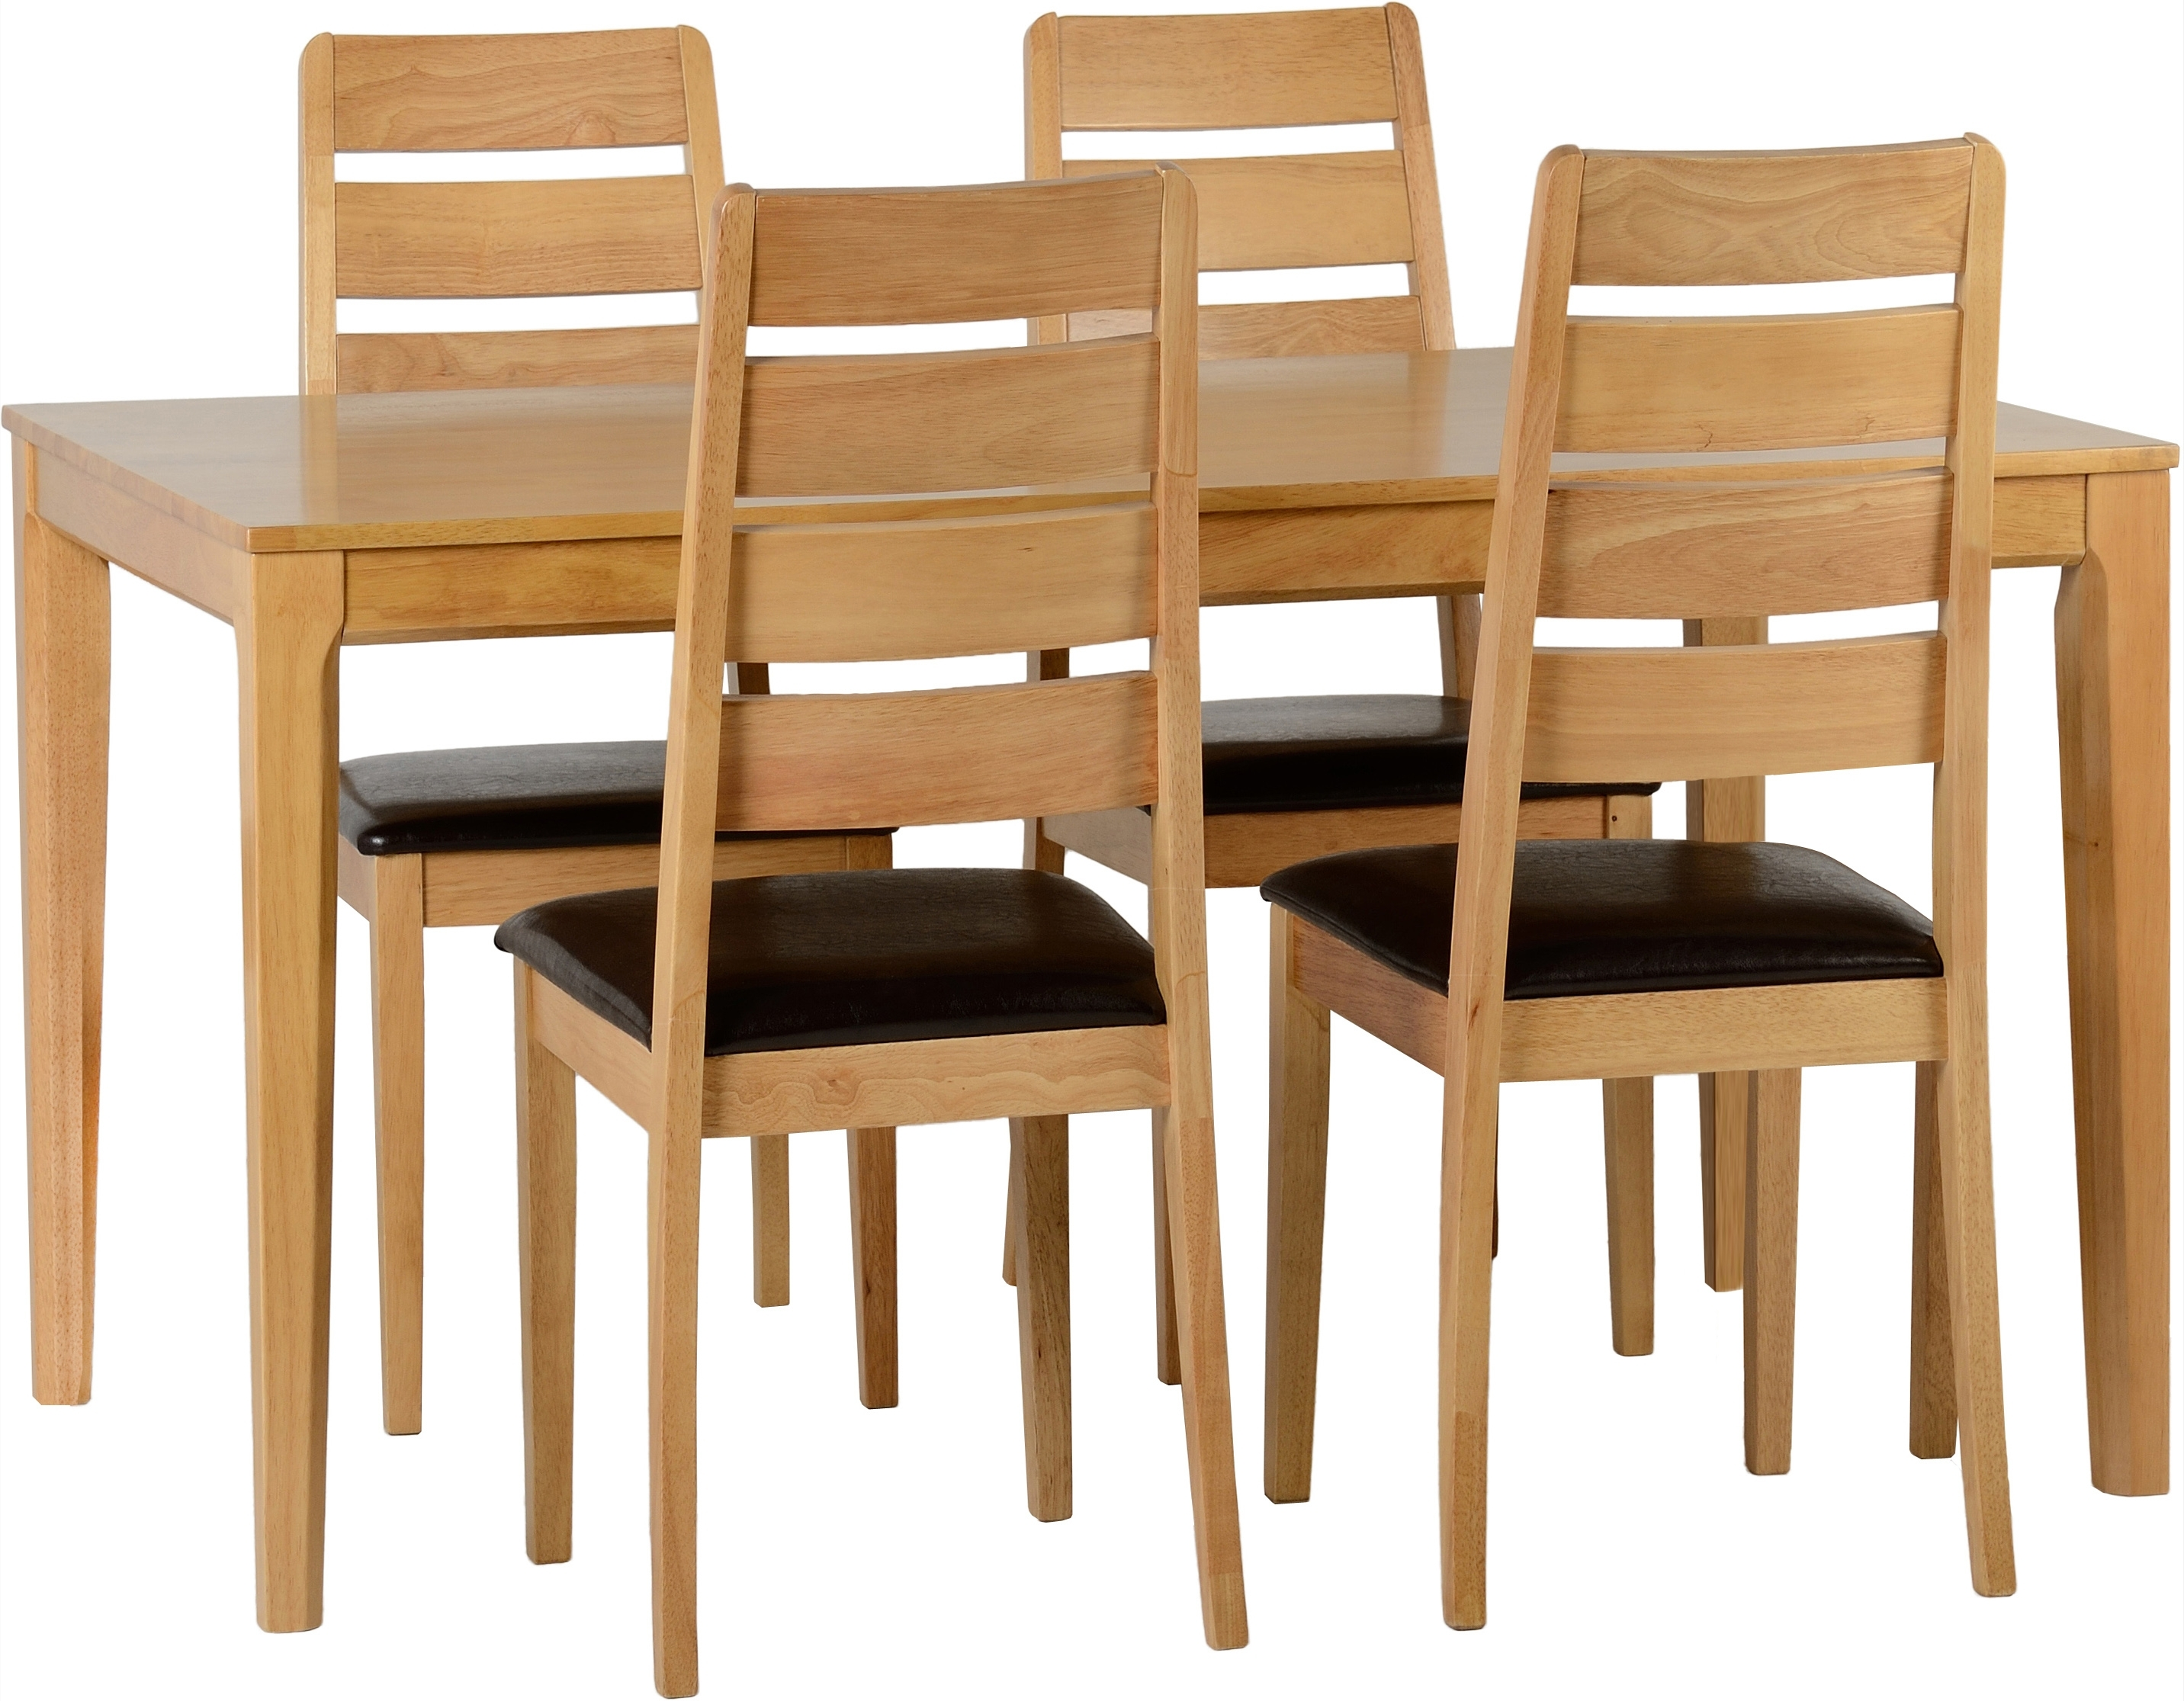 Logan Dining Tables For Most Recently Released Essex Logan Dining Table & 4 Chairs – Offersbargains (View 14 of 25)